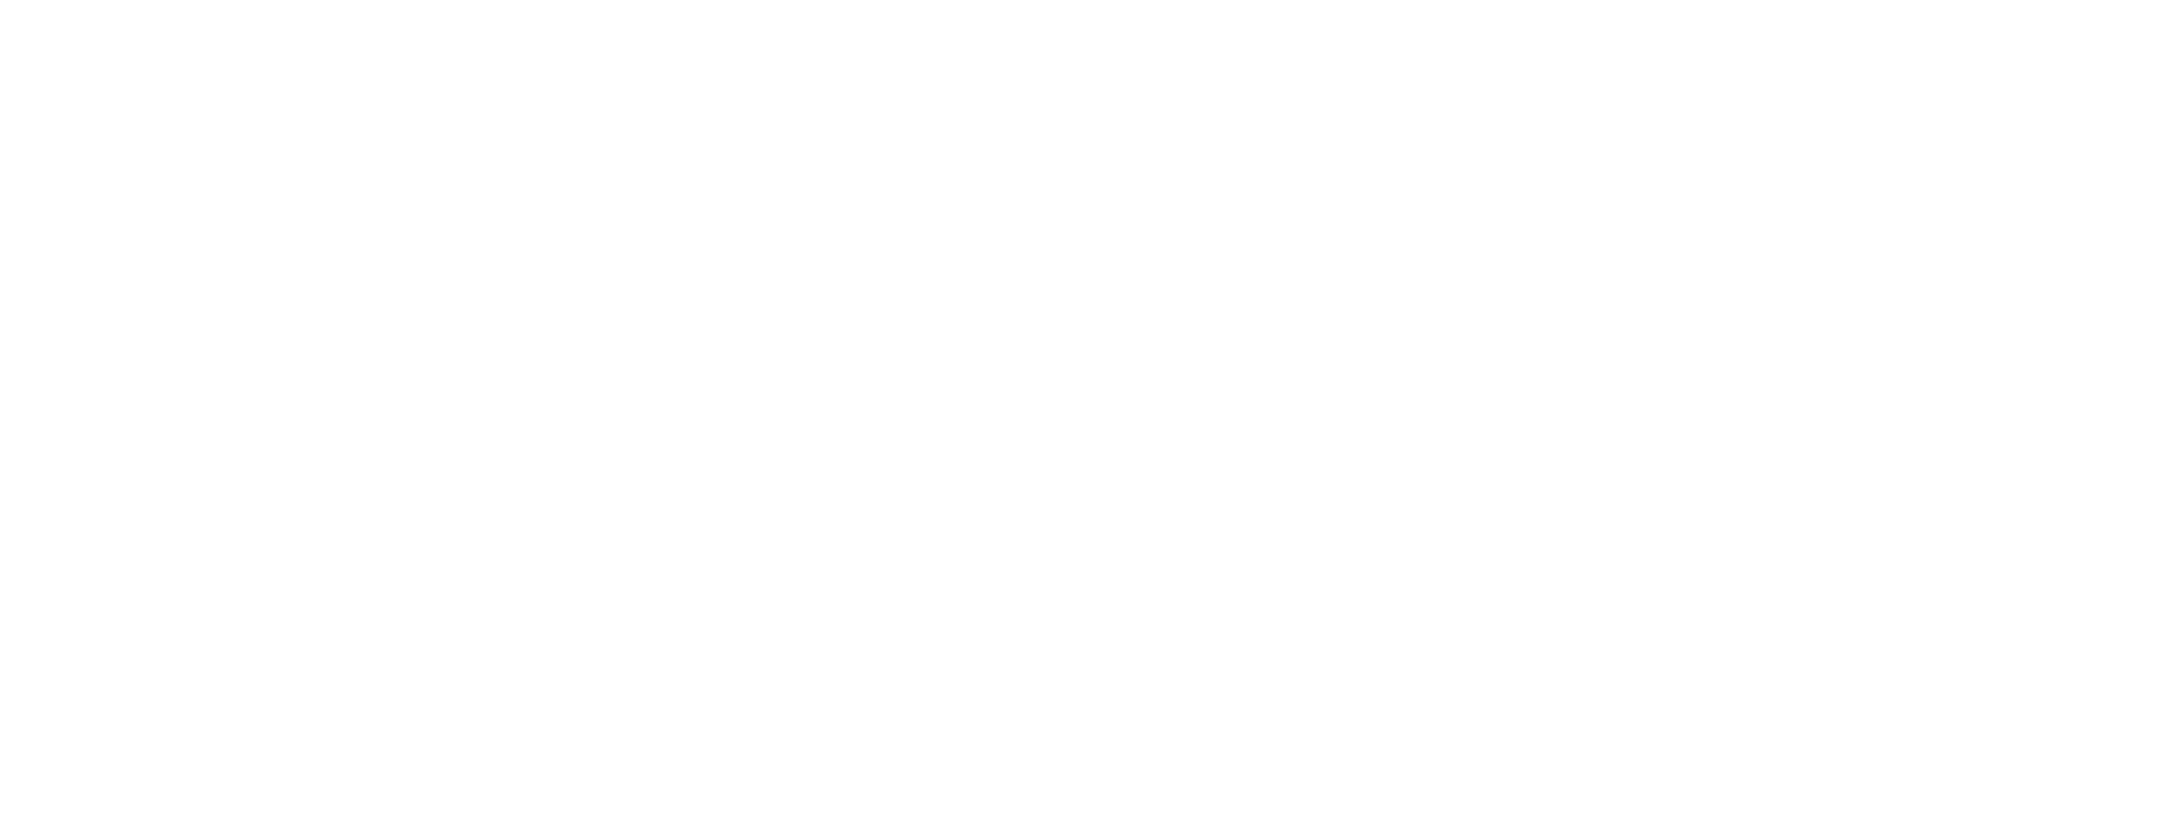 Promontory Point Apartments